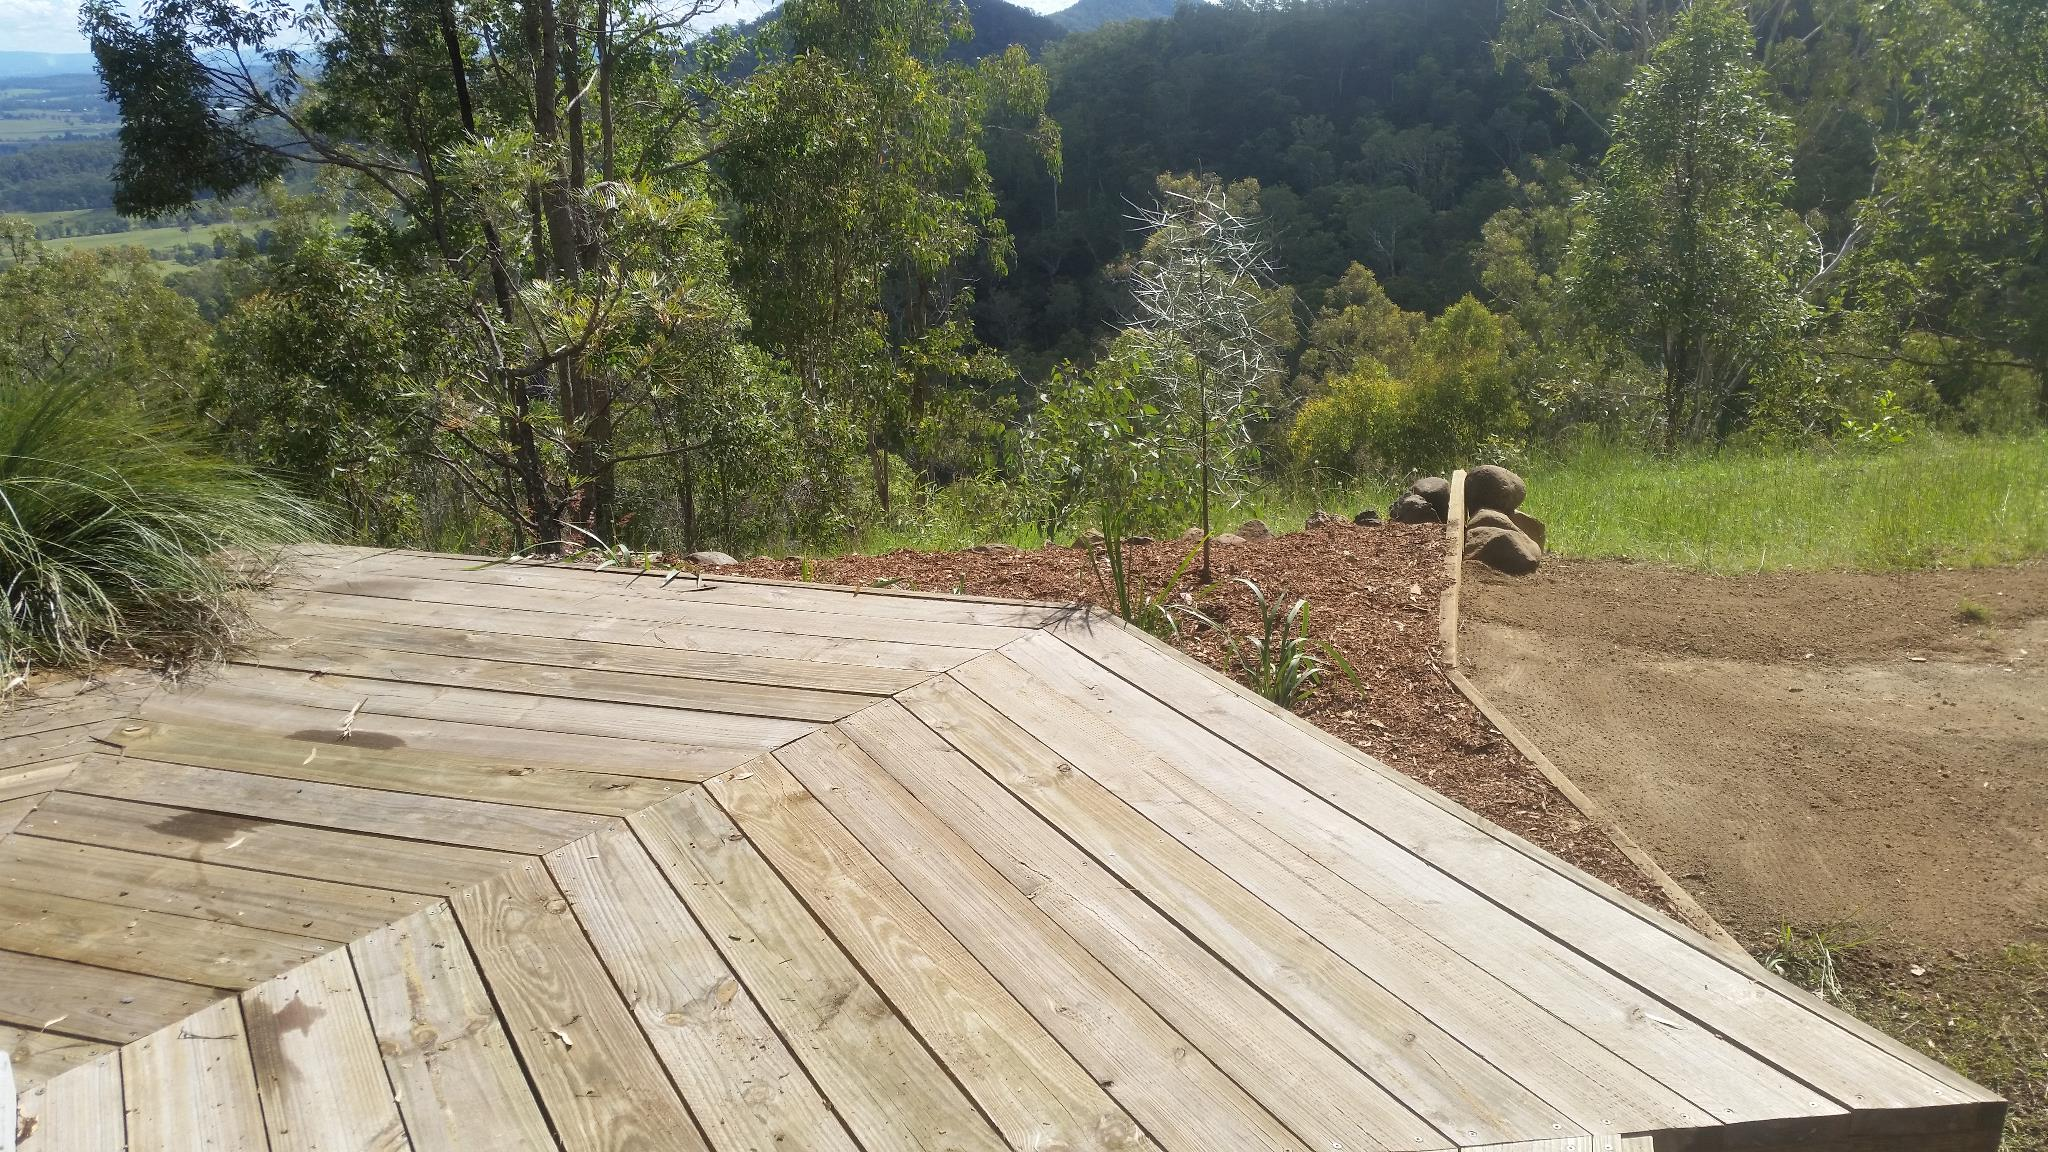 Fire Deck - North Garden - Finished